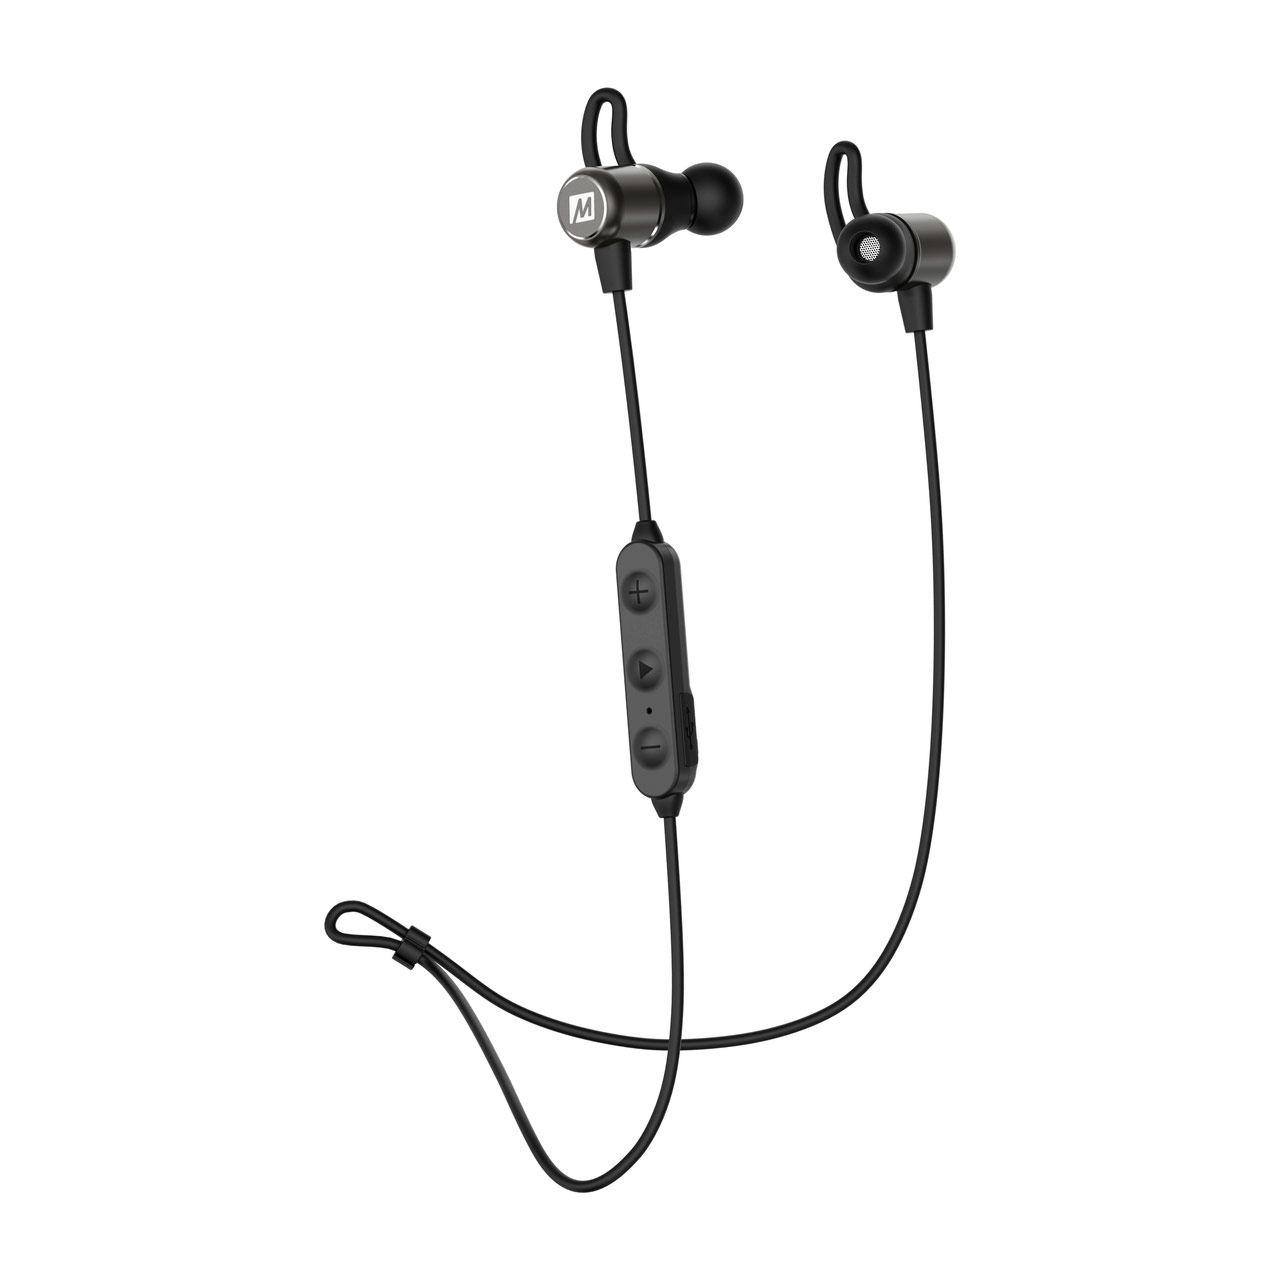 Ear Boost Bluetooth Wireless Adaptive Audio Enhancement Earphones